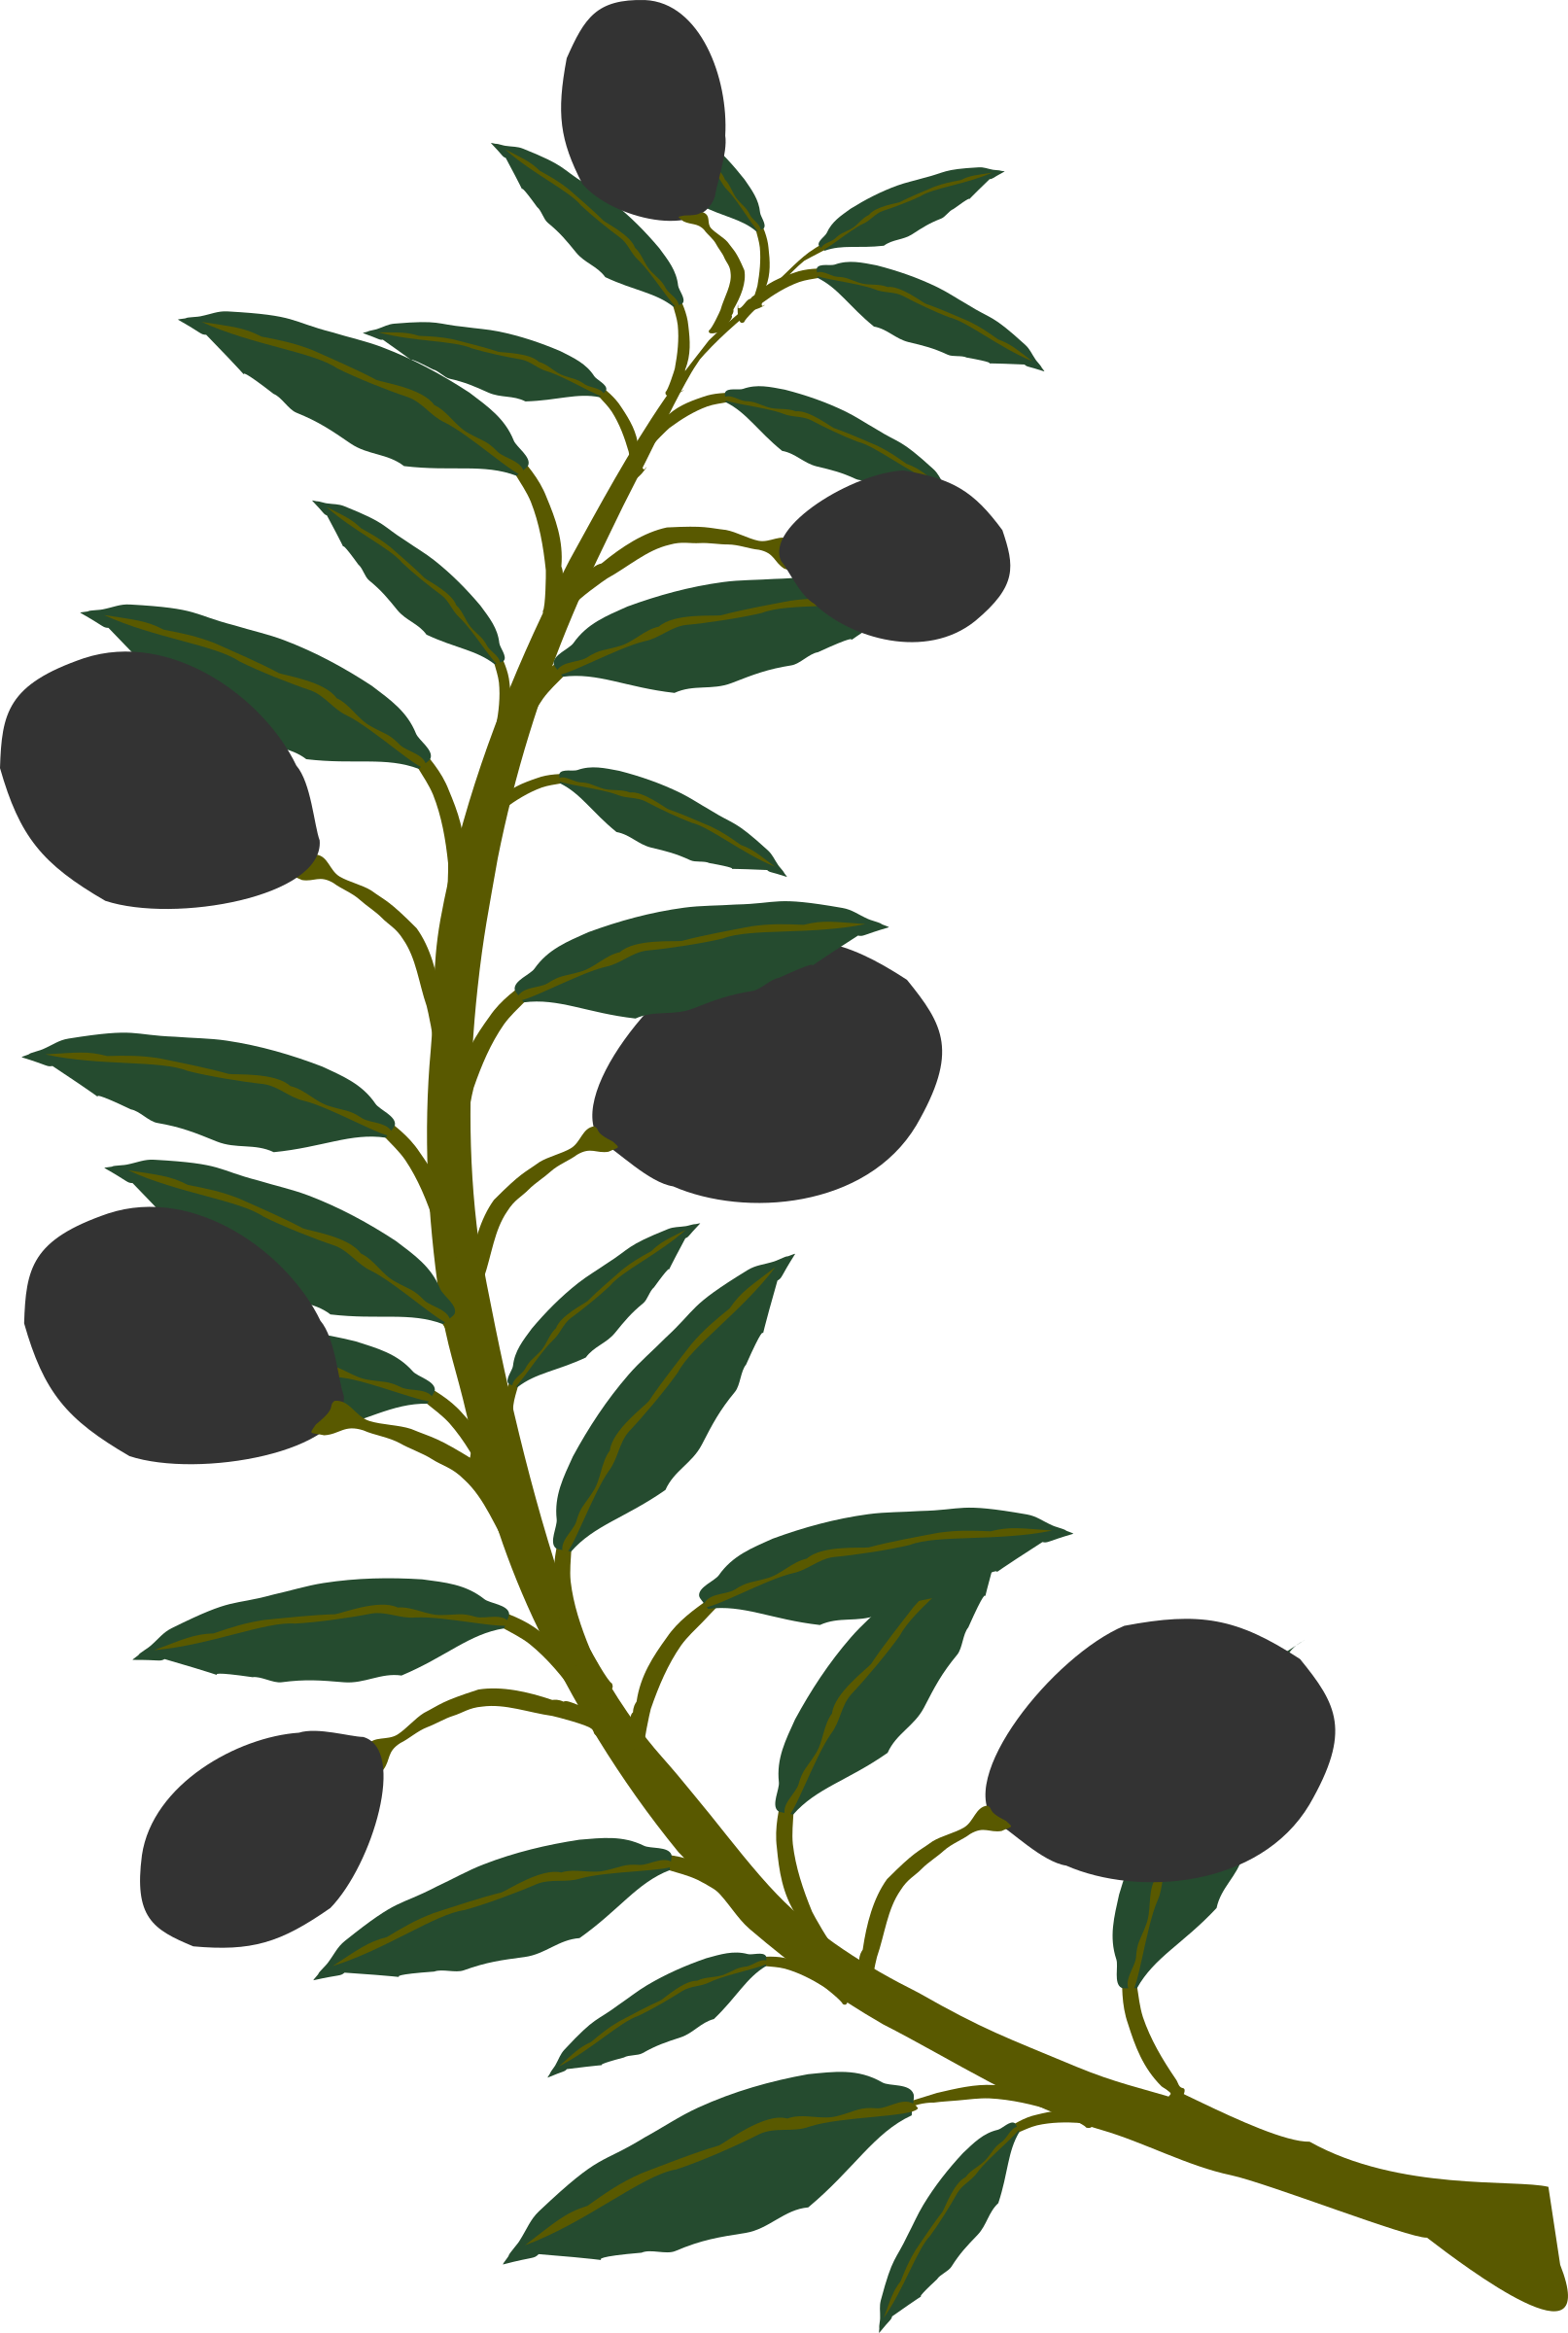 Leaf clipart olive tree.  collection of branches